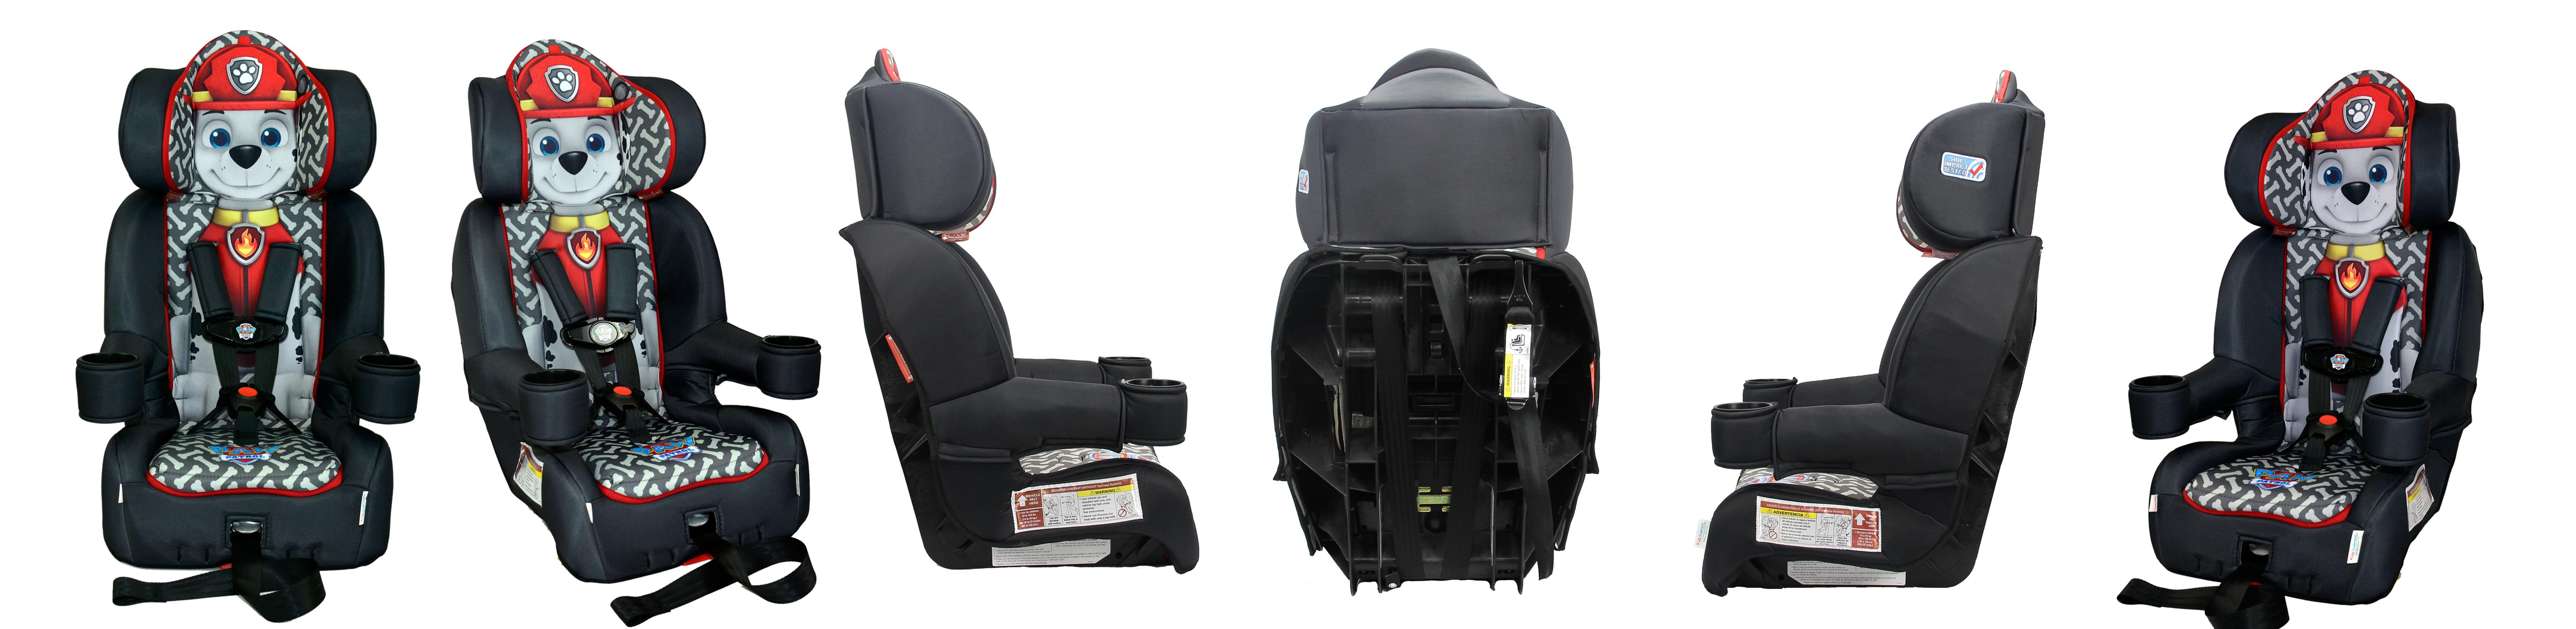 Kidsembrace paw patrol booster car seat for The federal motor vehicle safety standards are written